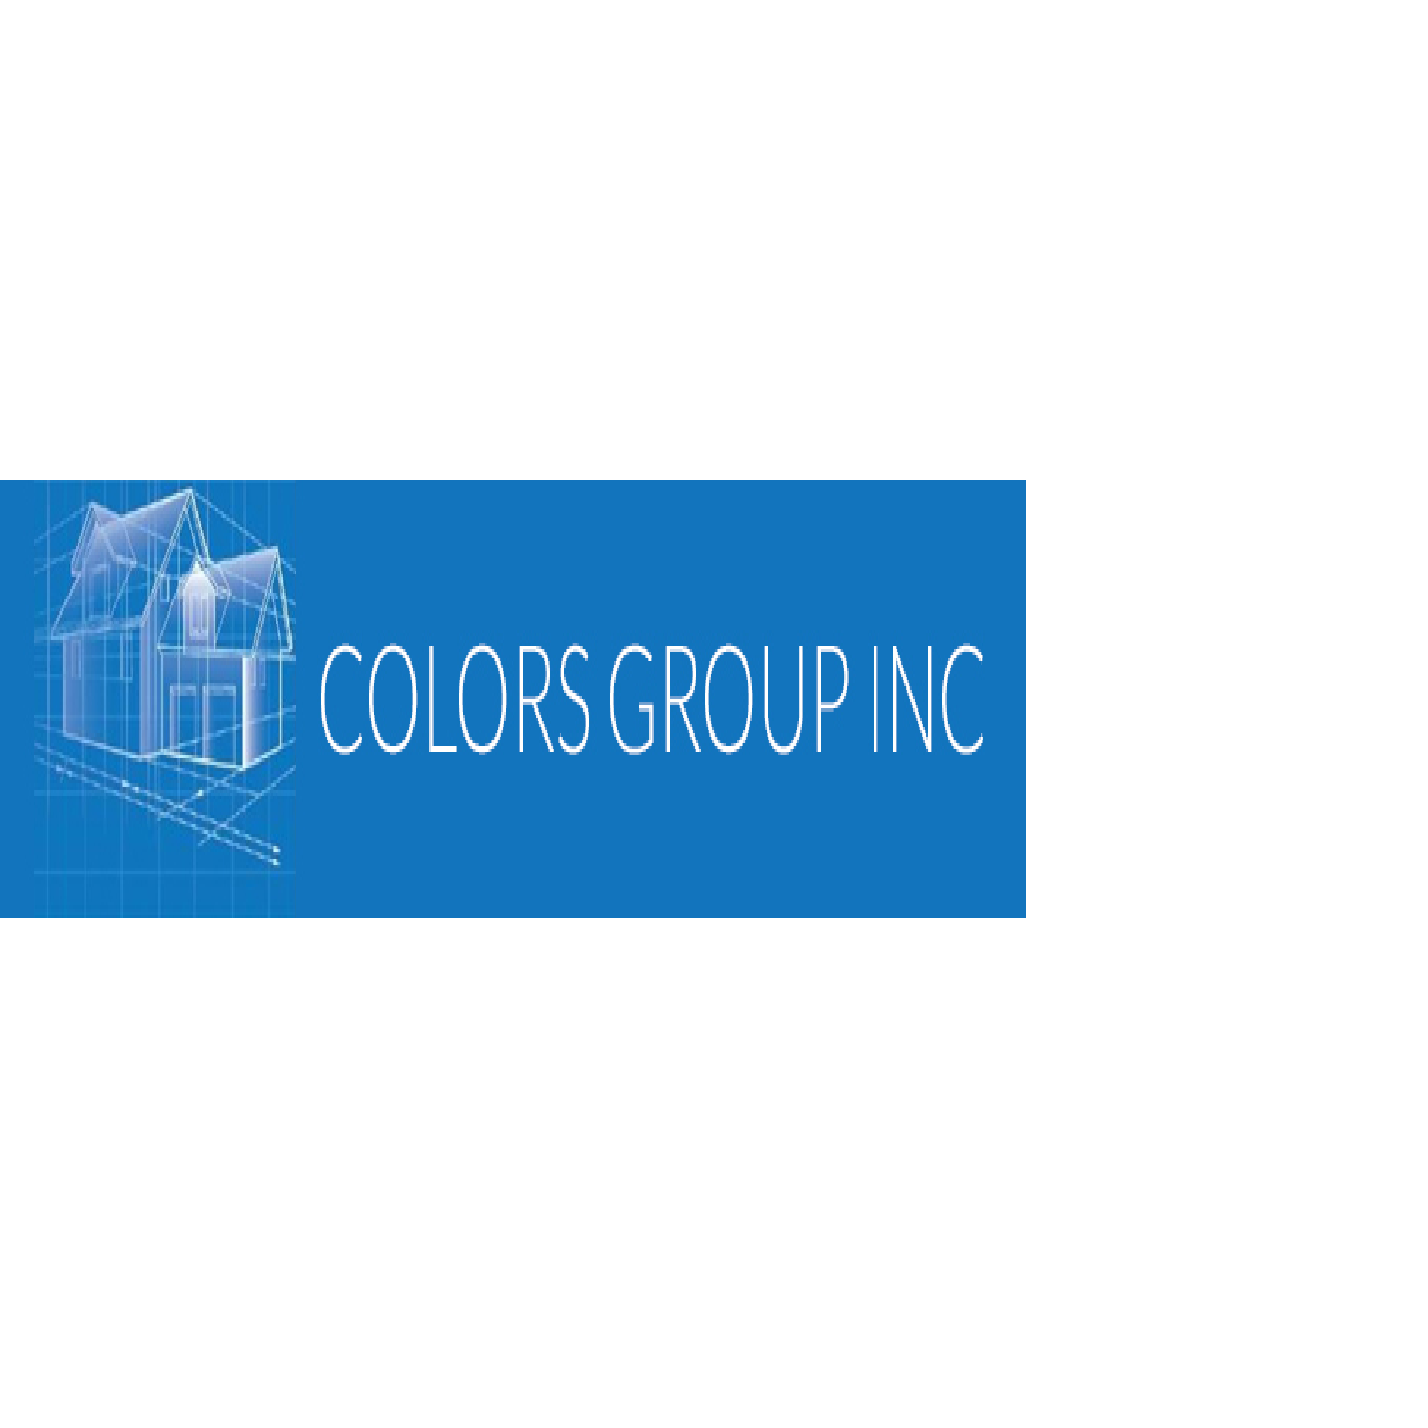 Colors Group Inc